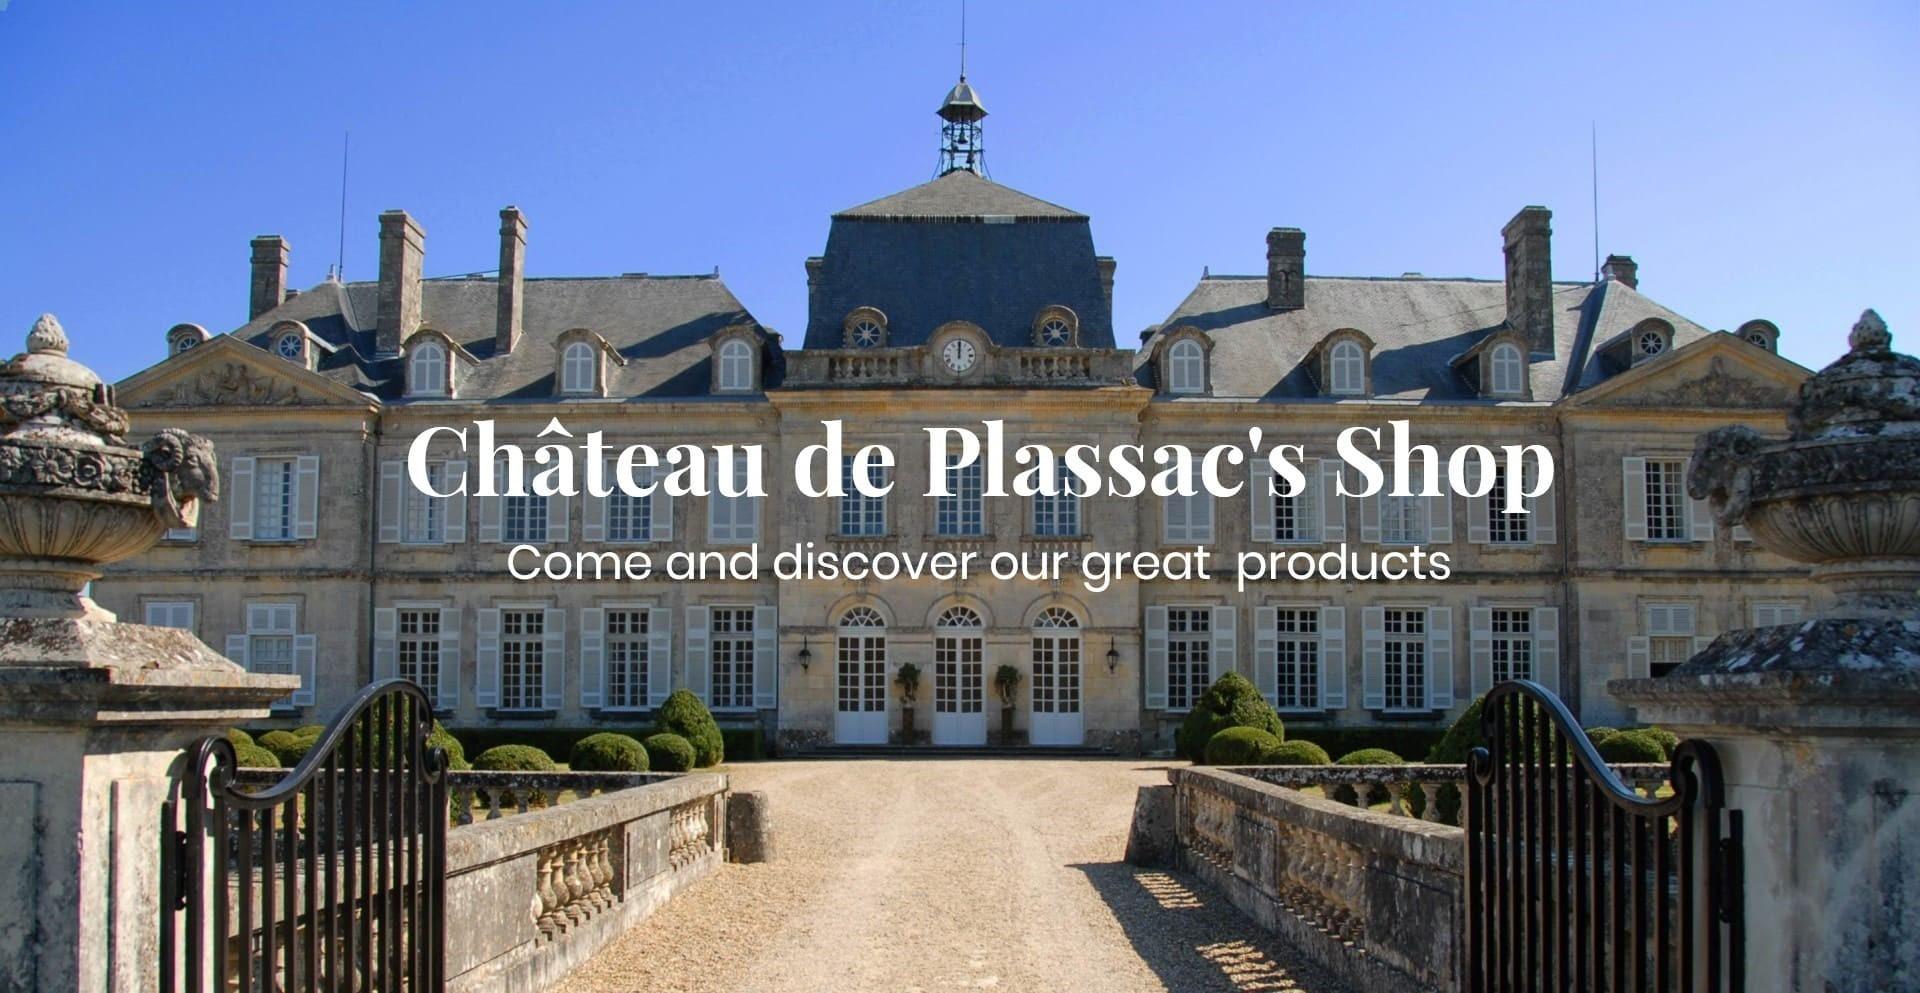 Chateau de Plassac of the Counts of Dampierre, View of the main courtyard